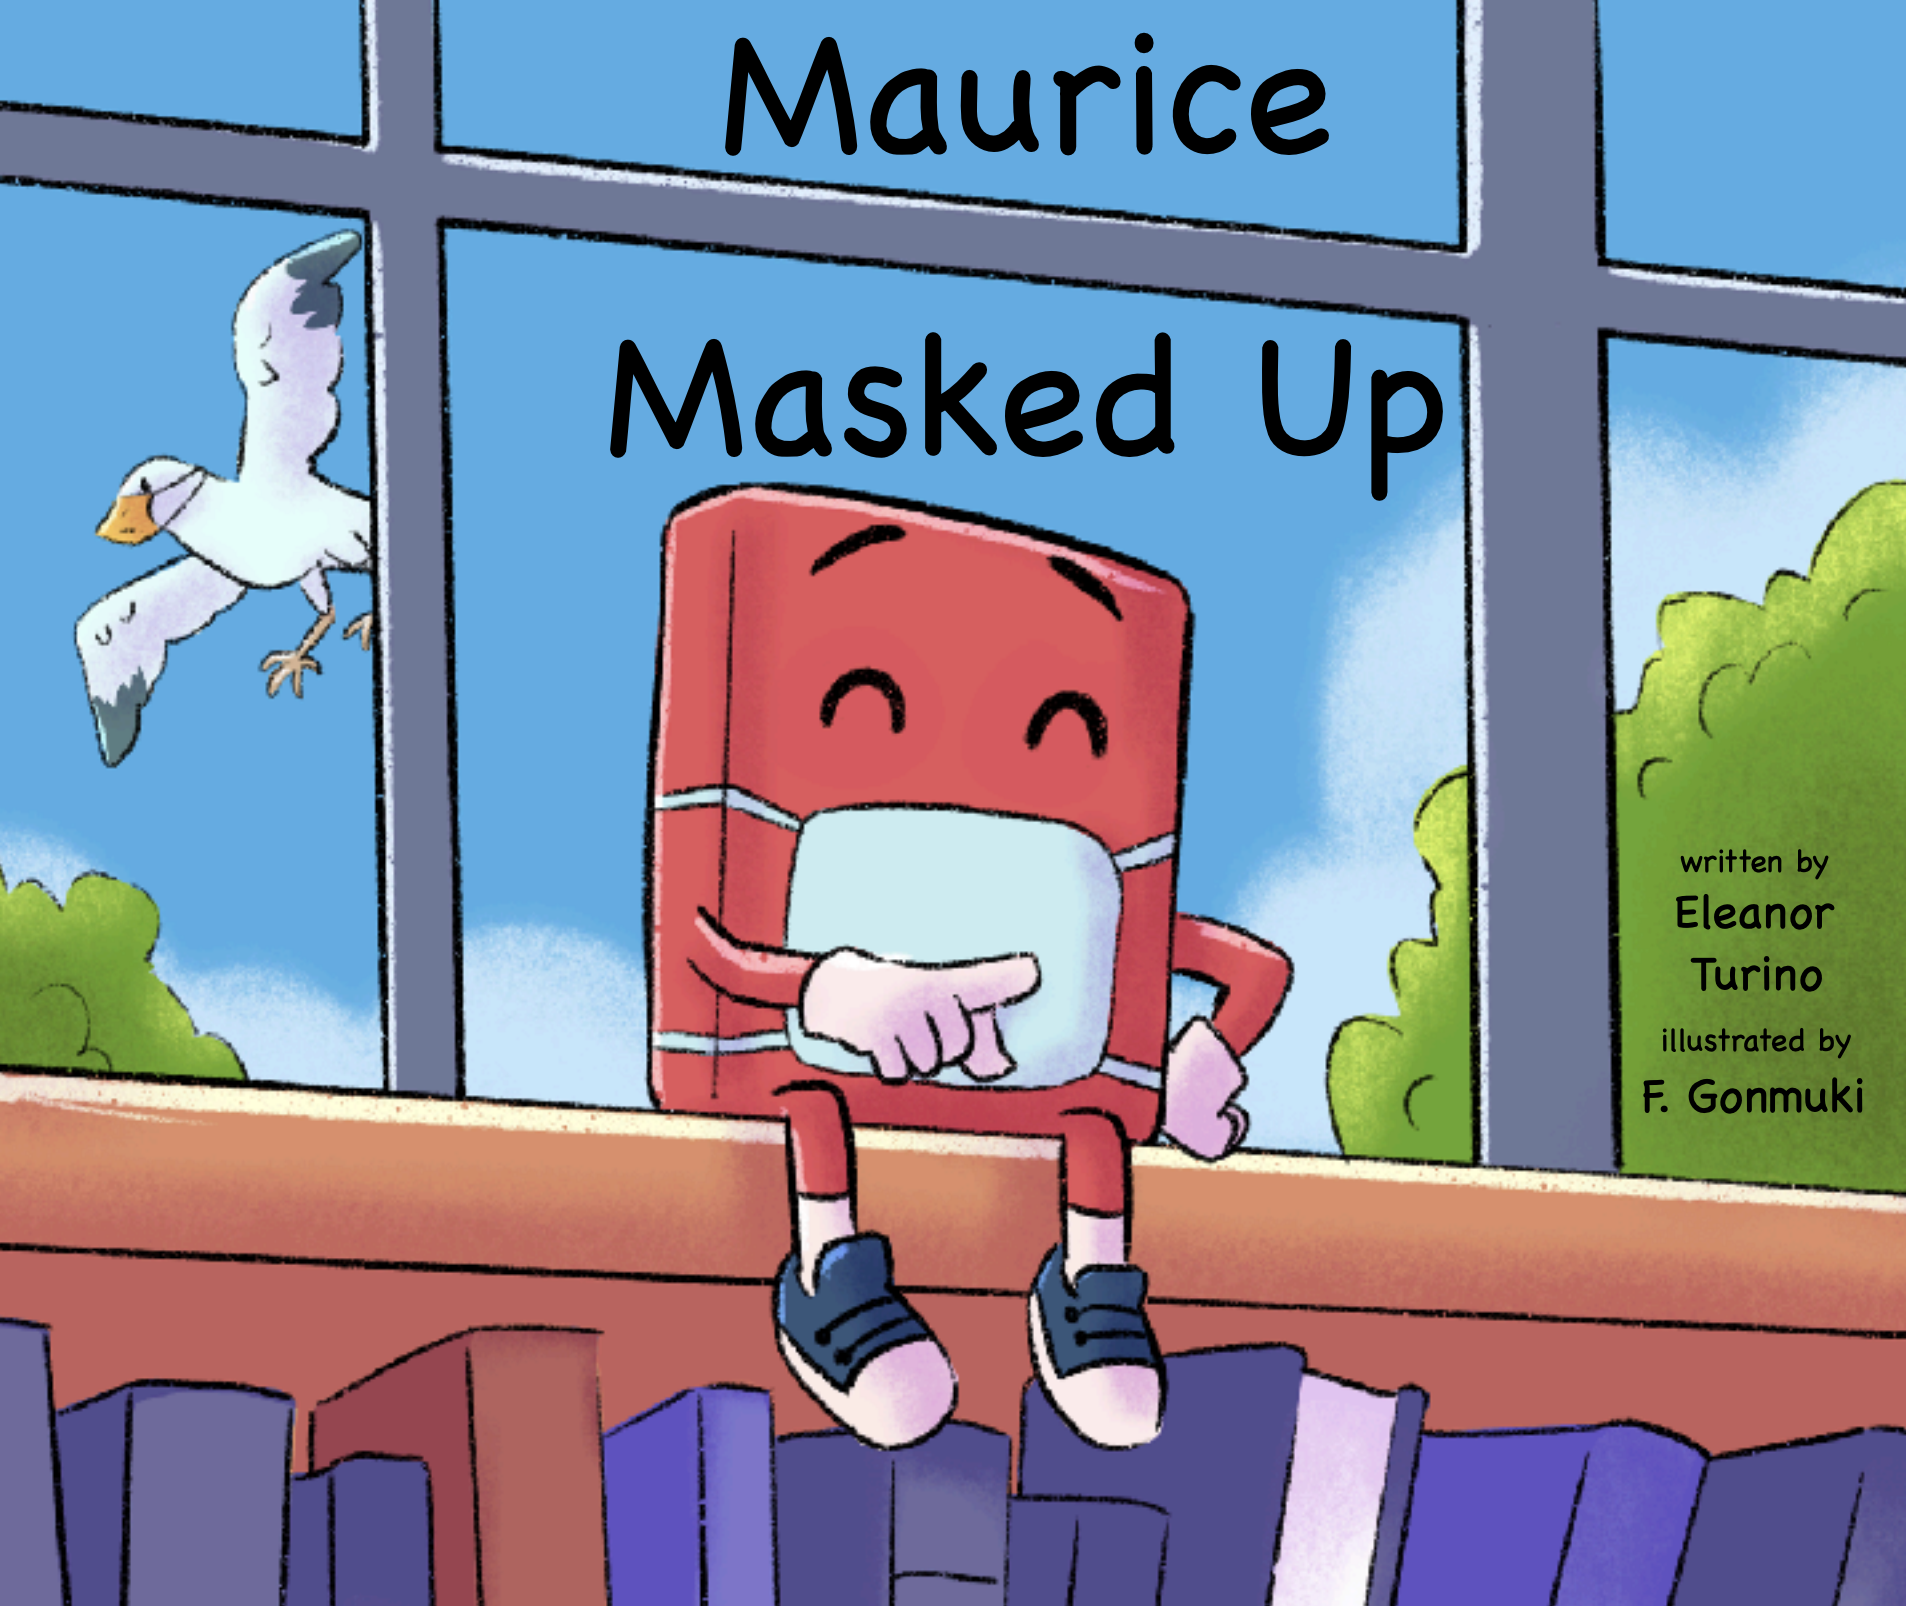 Maurice Masked Up